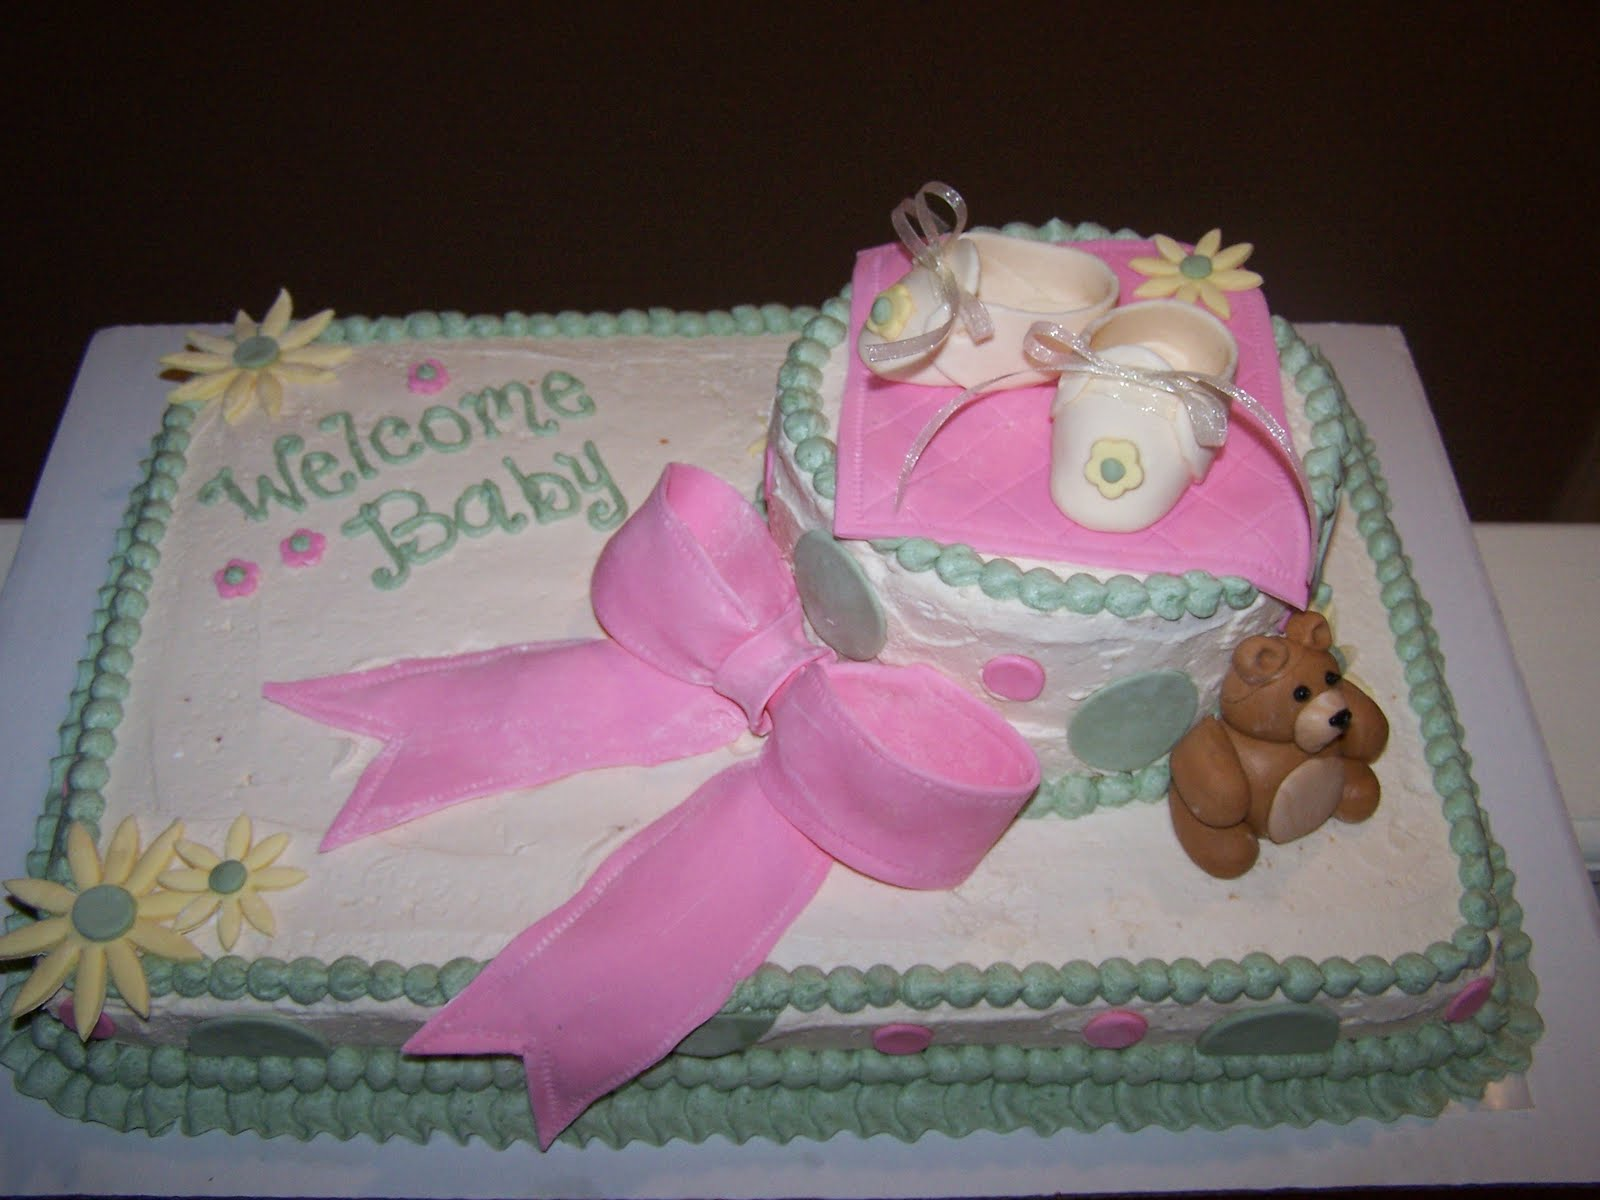 Living Room Decorating Ideas: Baby Shower Sheet Cake ...